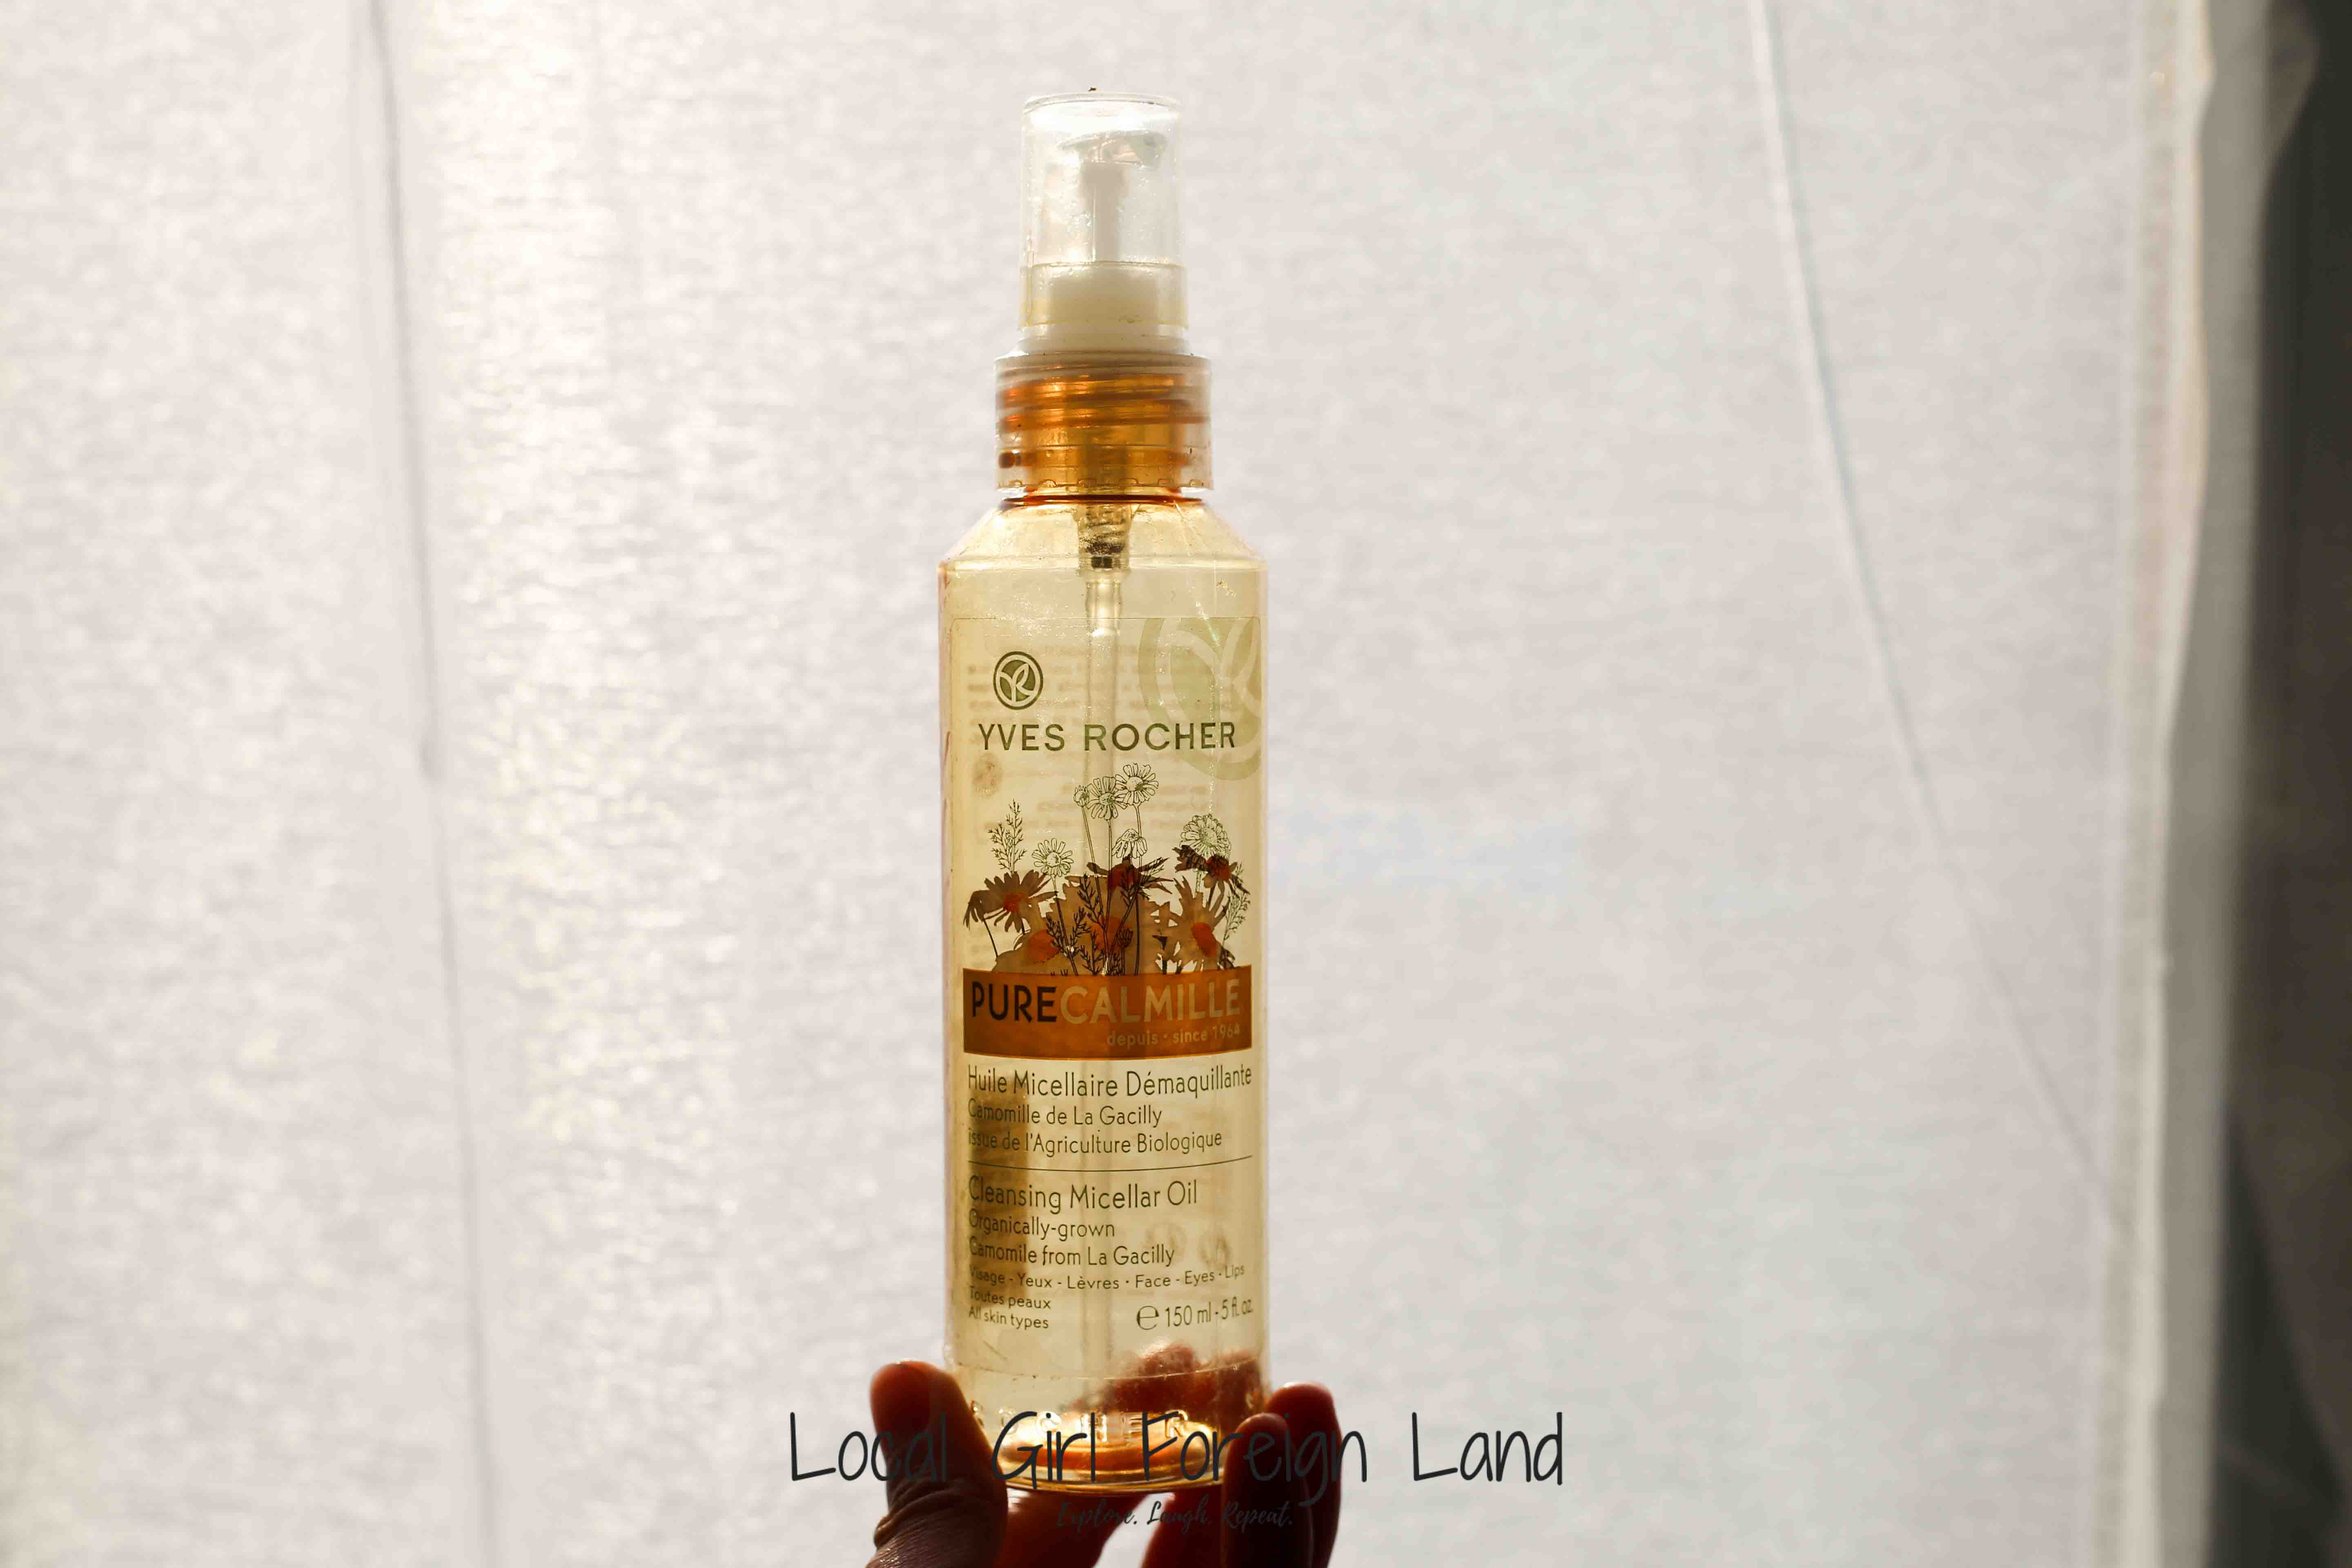 Yves-Rocher-cleansing-miceller-oil-pure-calmille-review-6738.JPG